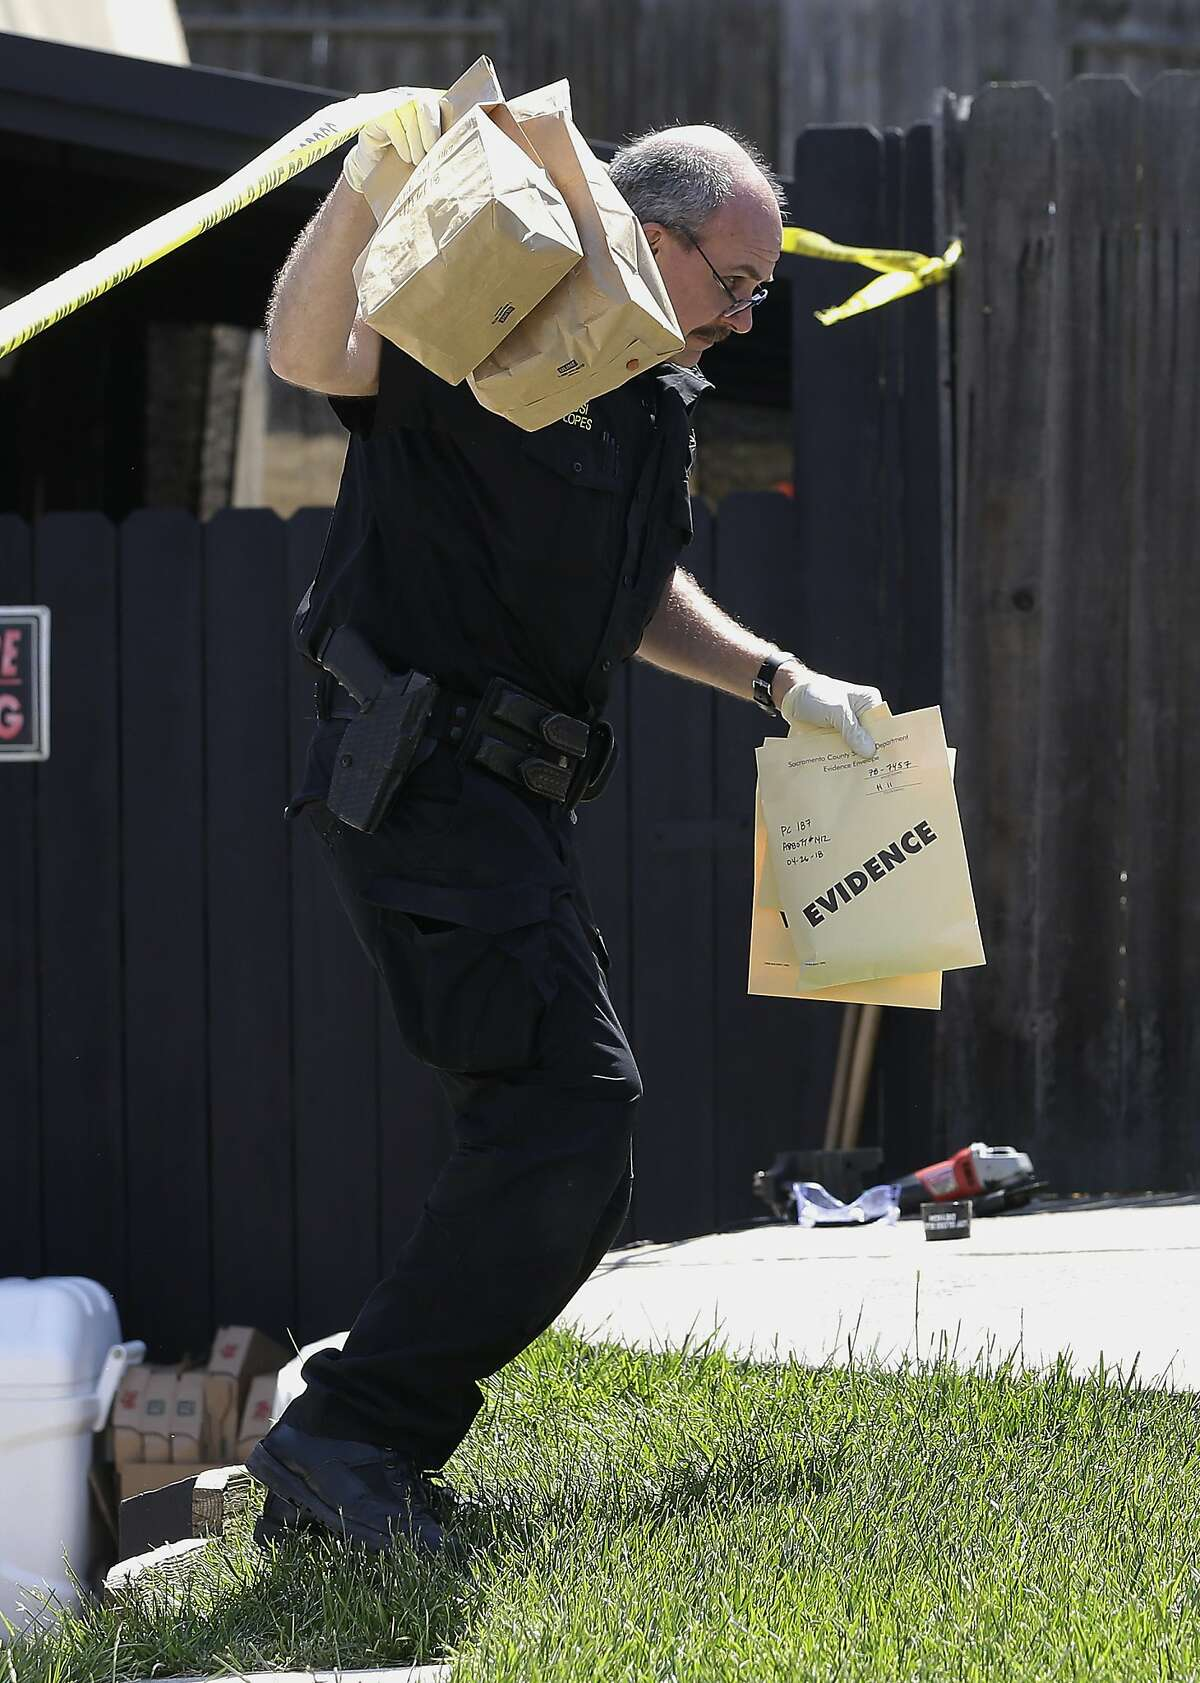 John Lopes, a crime scene investigator for the Sacramento Sheriff's office carries bags of evidence taken from the home of murder suspect Joseph DeAngelo to a sheriff's vehicle Thursday, April 26, 2018, in Citrus Heights, Calif. DeAngelo, 72, was taken into custody, Tuesday, on suspicion of committing multiple homicides and rapes in the 1970's and 1980's in California. Authorities spent the day going through the home for evidence. (AP Photo/Rich Pedroncelli)